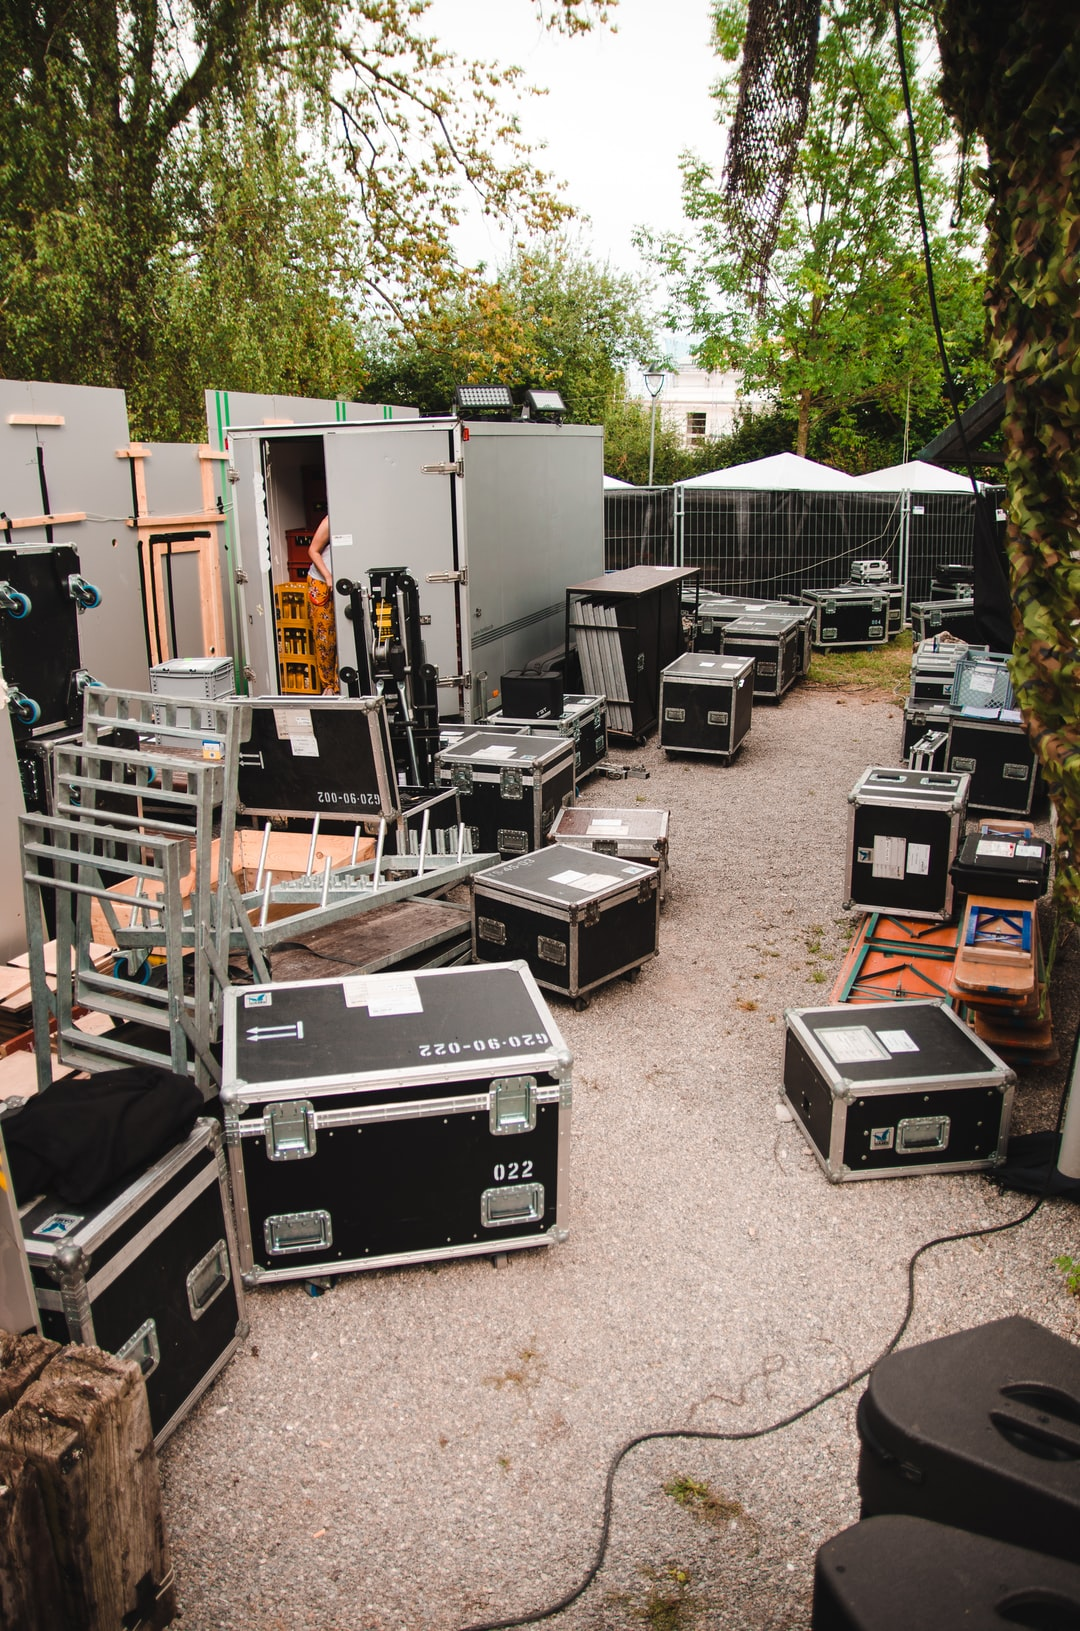 This is what our backstage looks like.